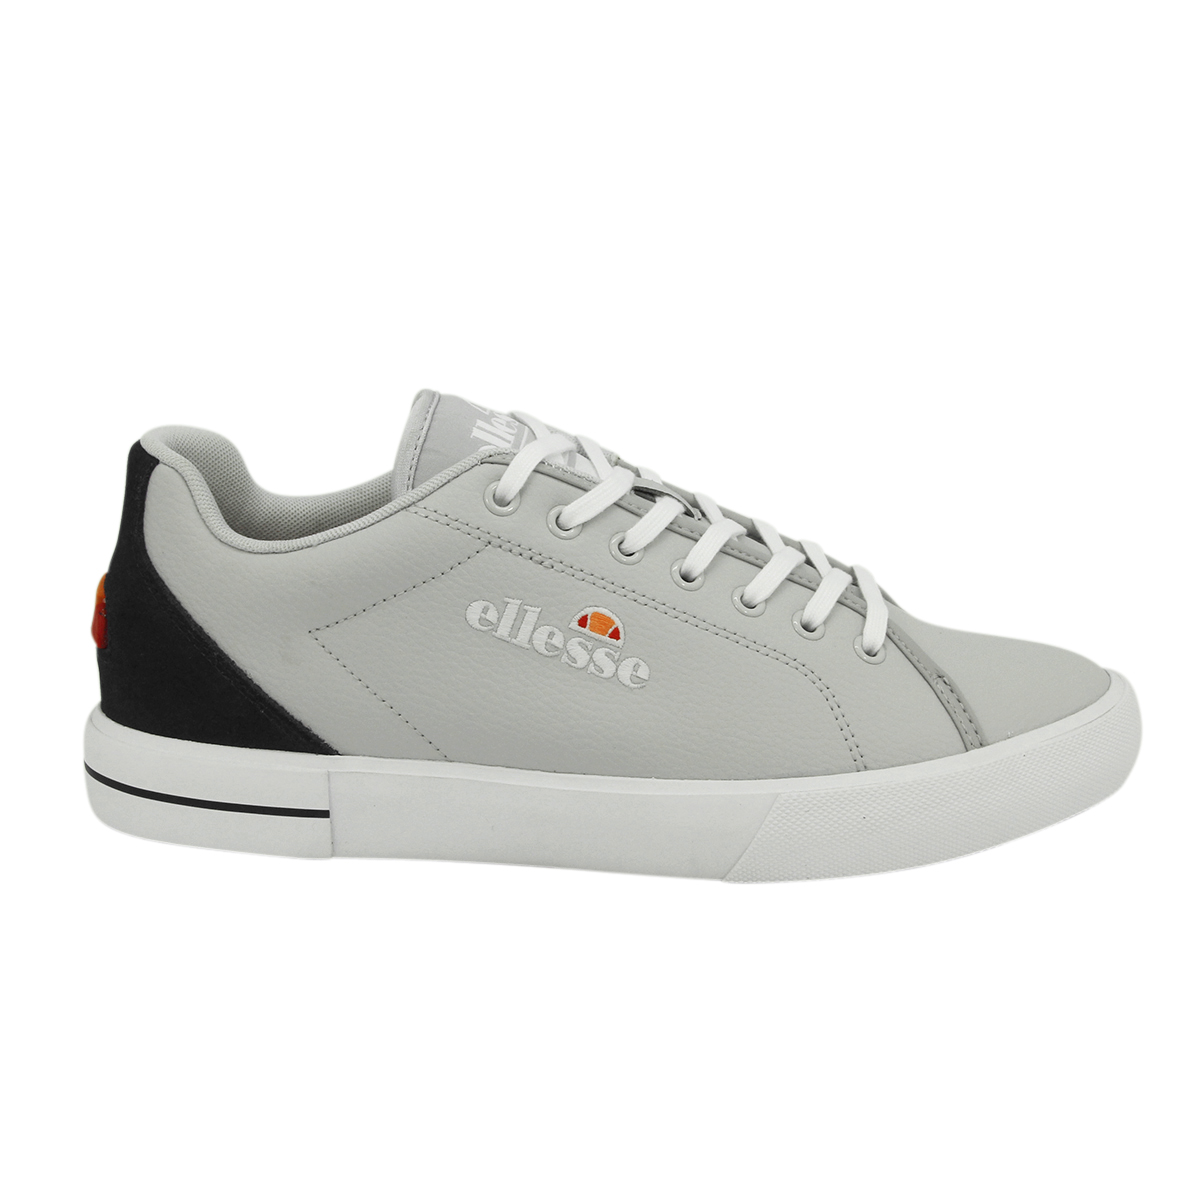 Ellesse TAGGIA Cuir Hommes Baskets Chaussures NEUF